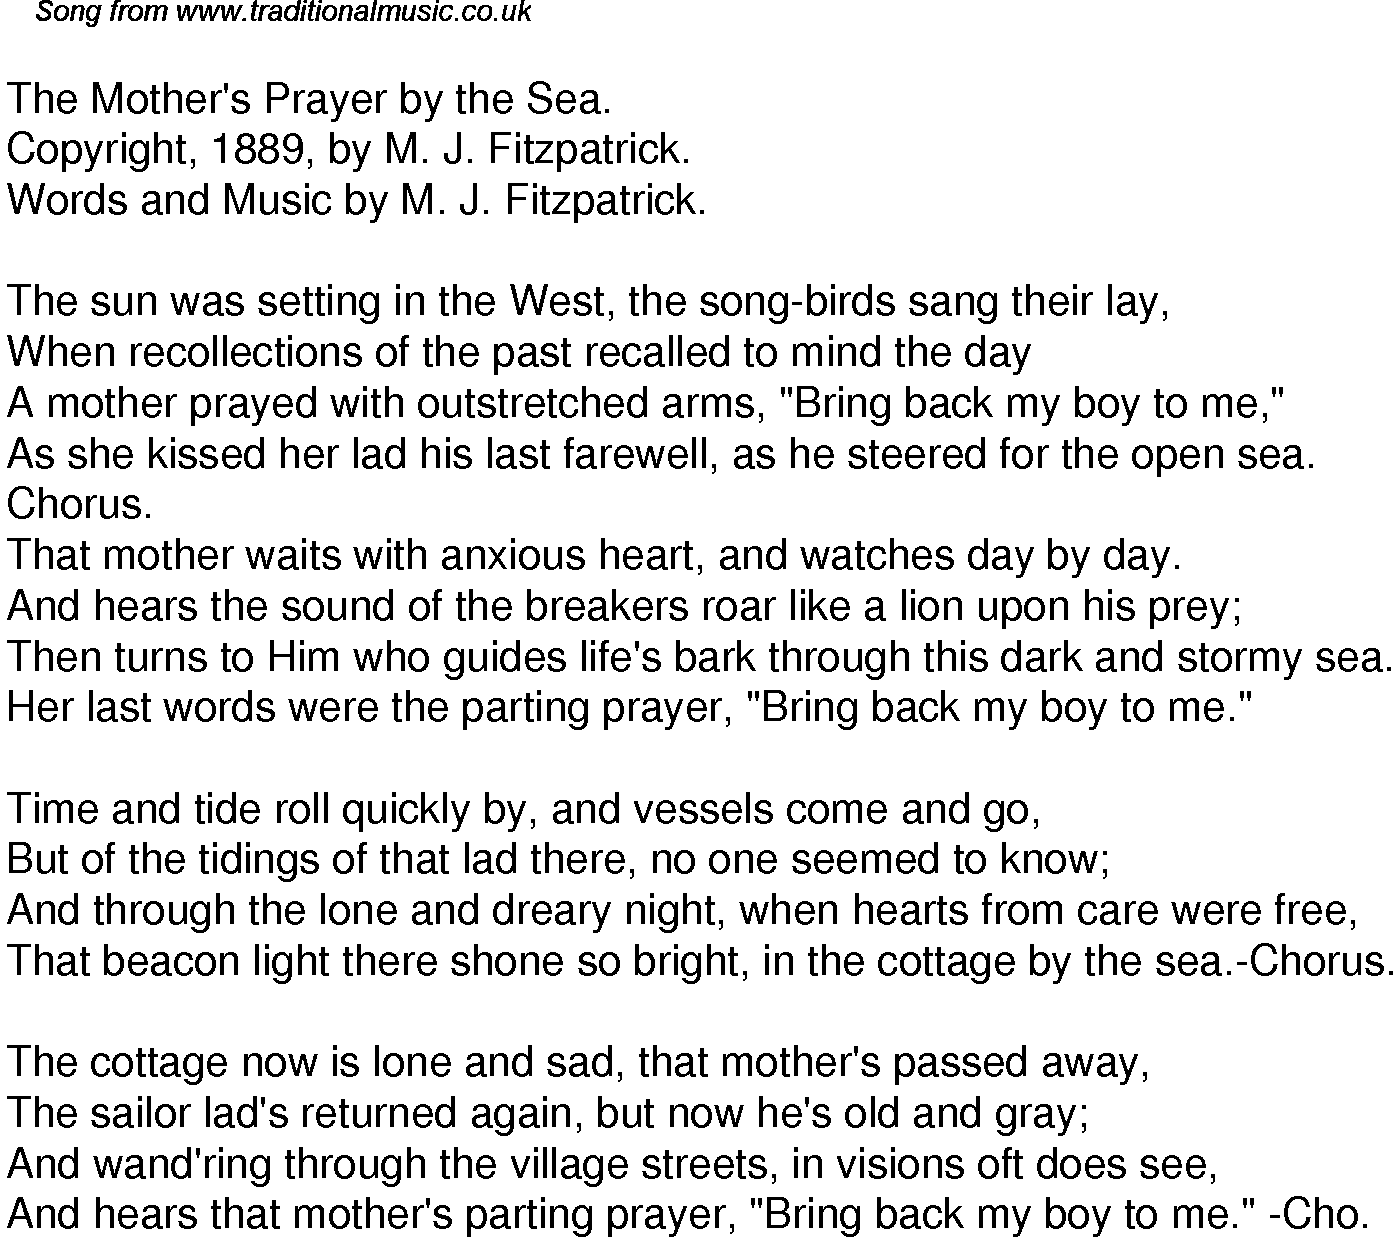 Old time song lyrics for 32 the mothers prayer by the sea download music lyrics as png graphic file publicscrutiny